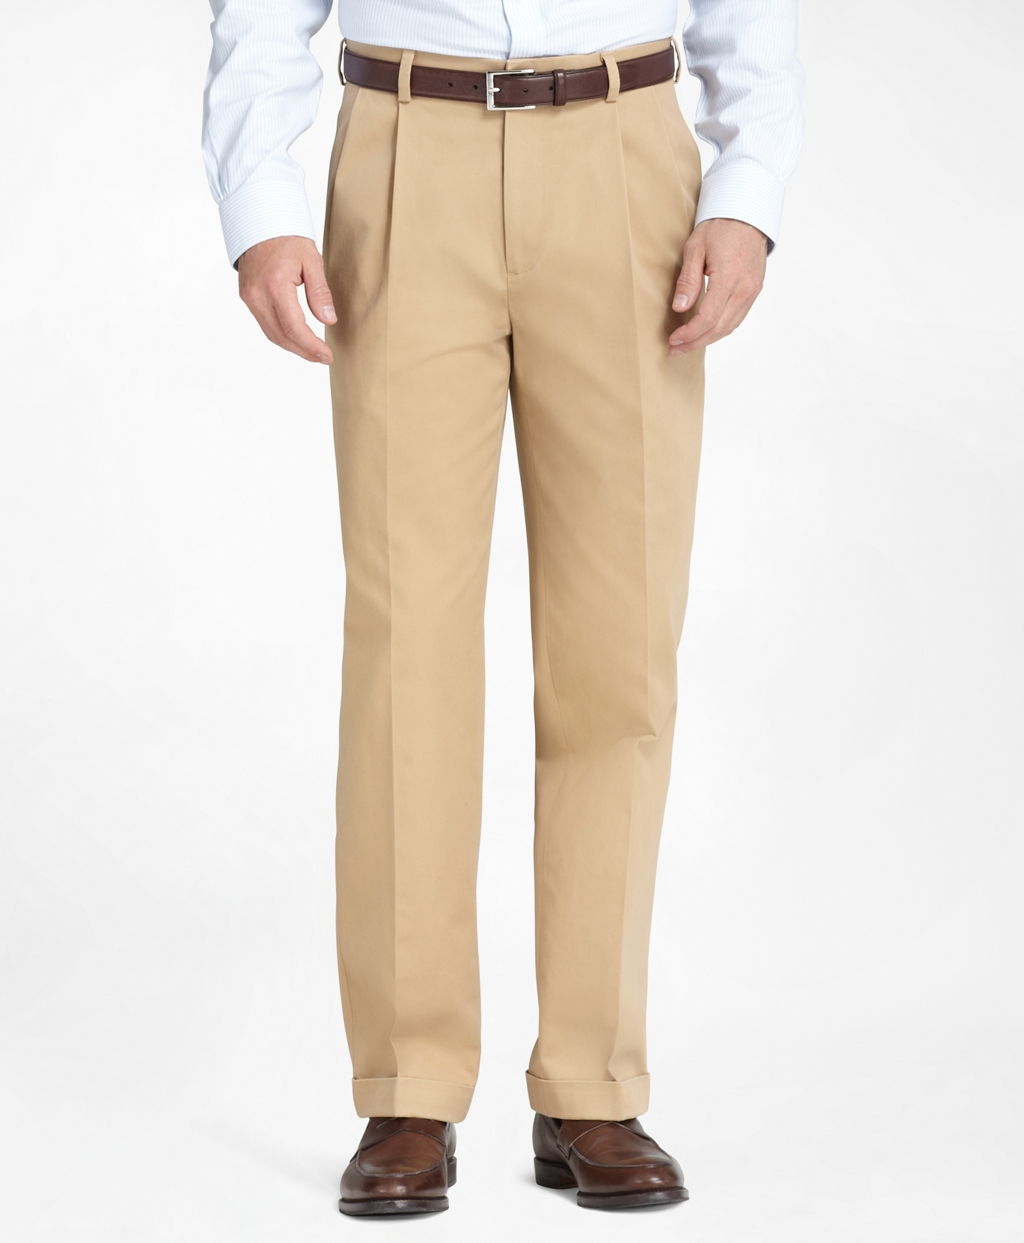 what stores sell khaki pants - Pi Pants